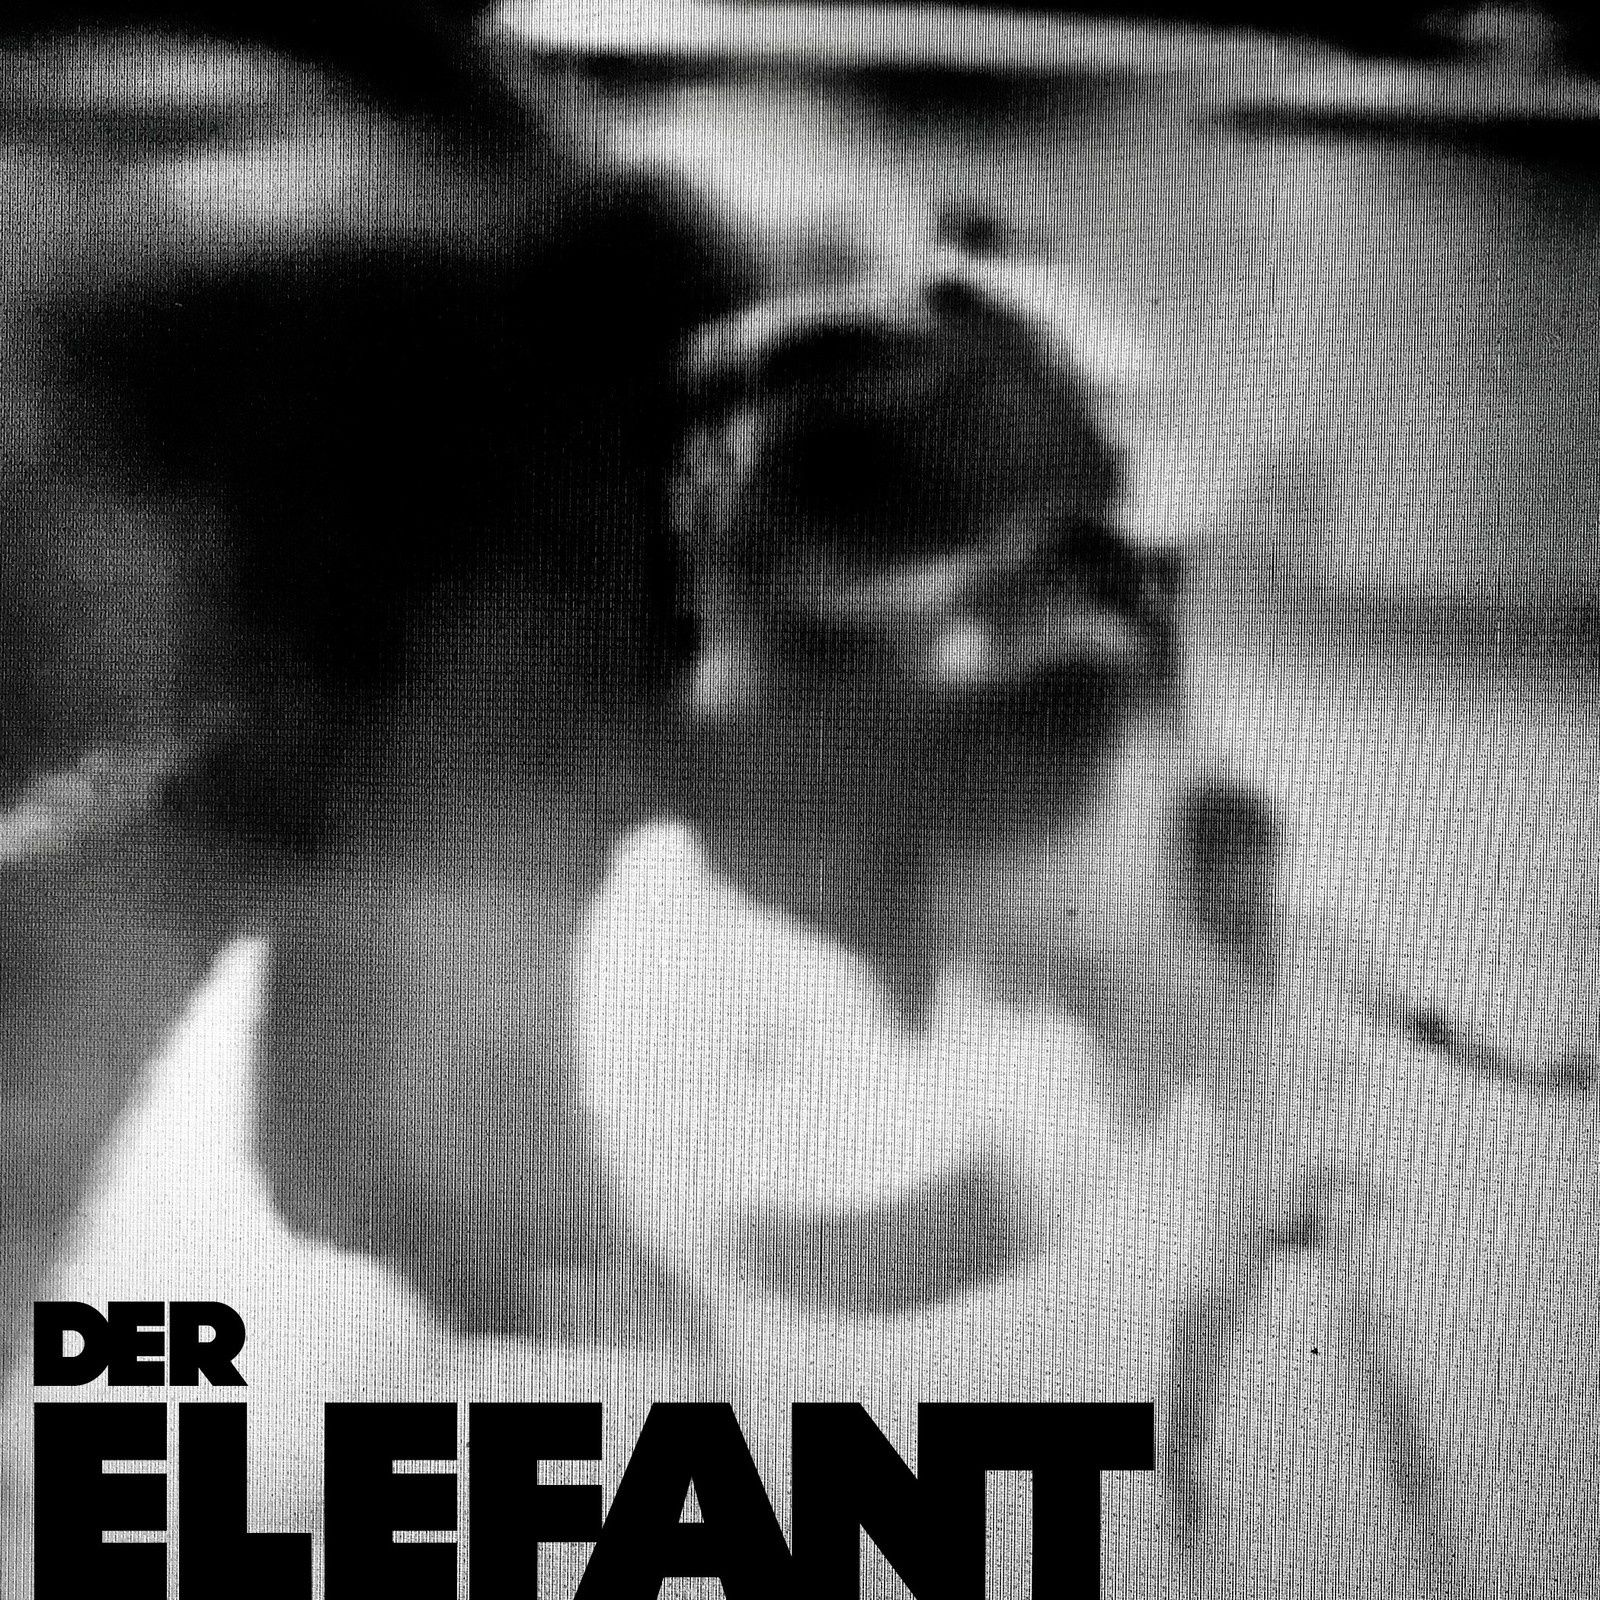 CD review DER ELEFANT &quot&#x3B;Der Elefant&quot&#x3B; EP